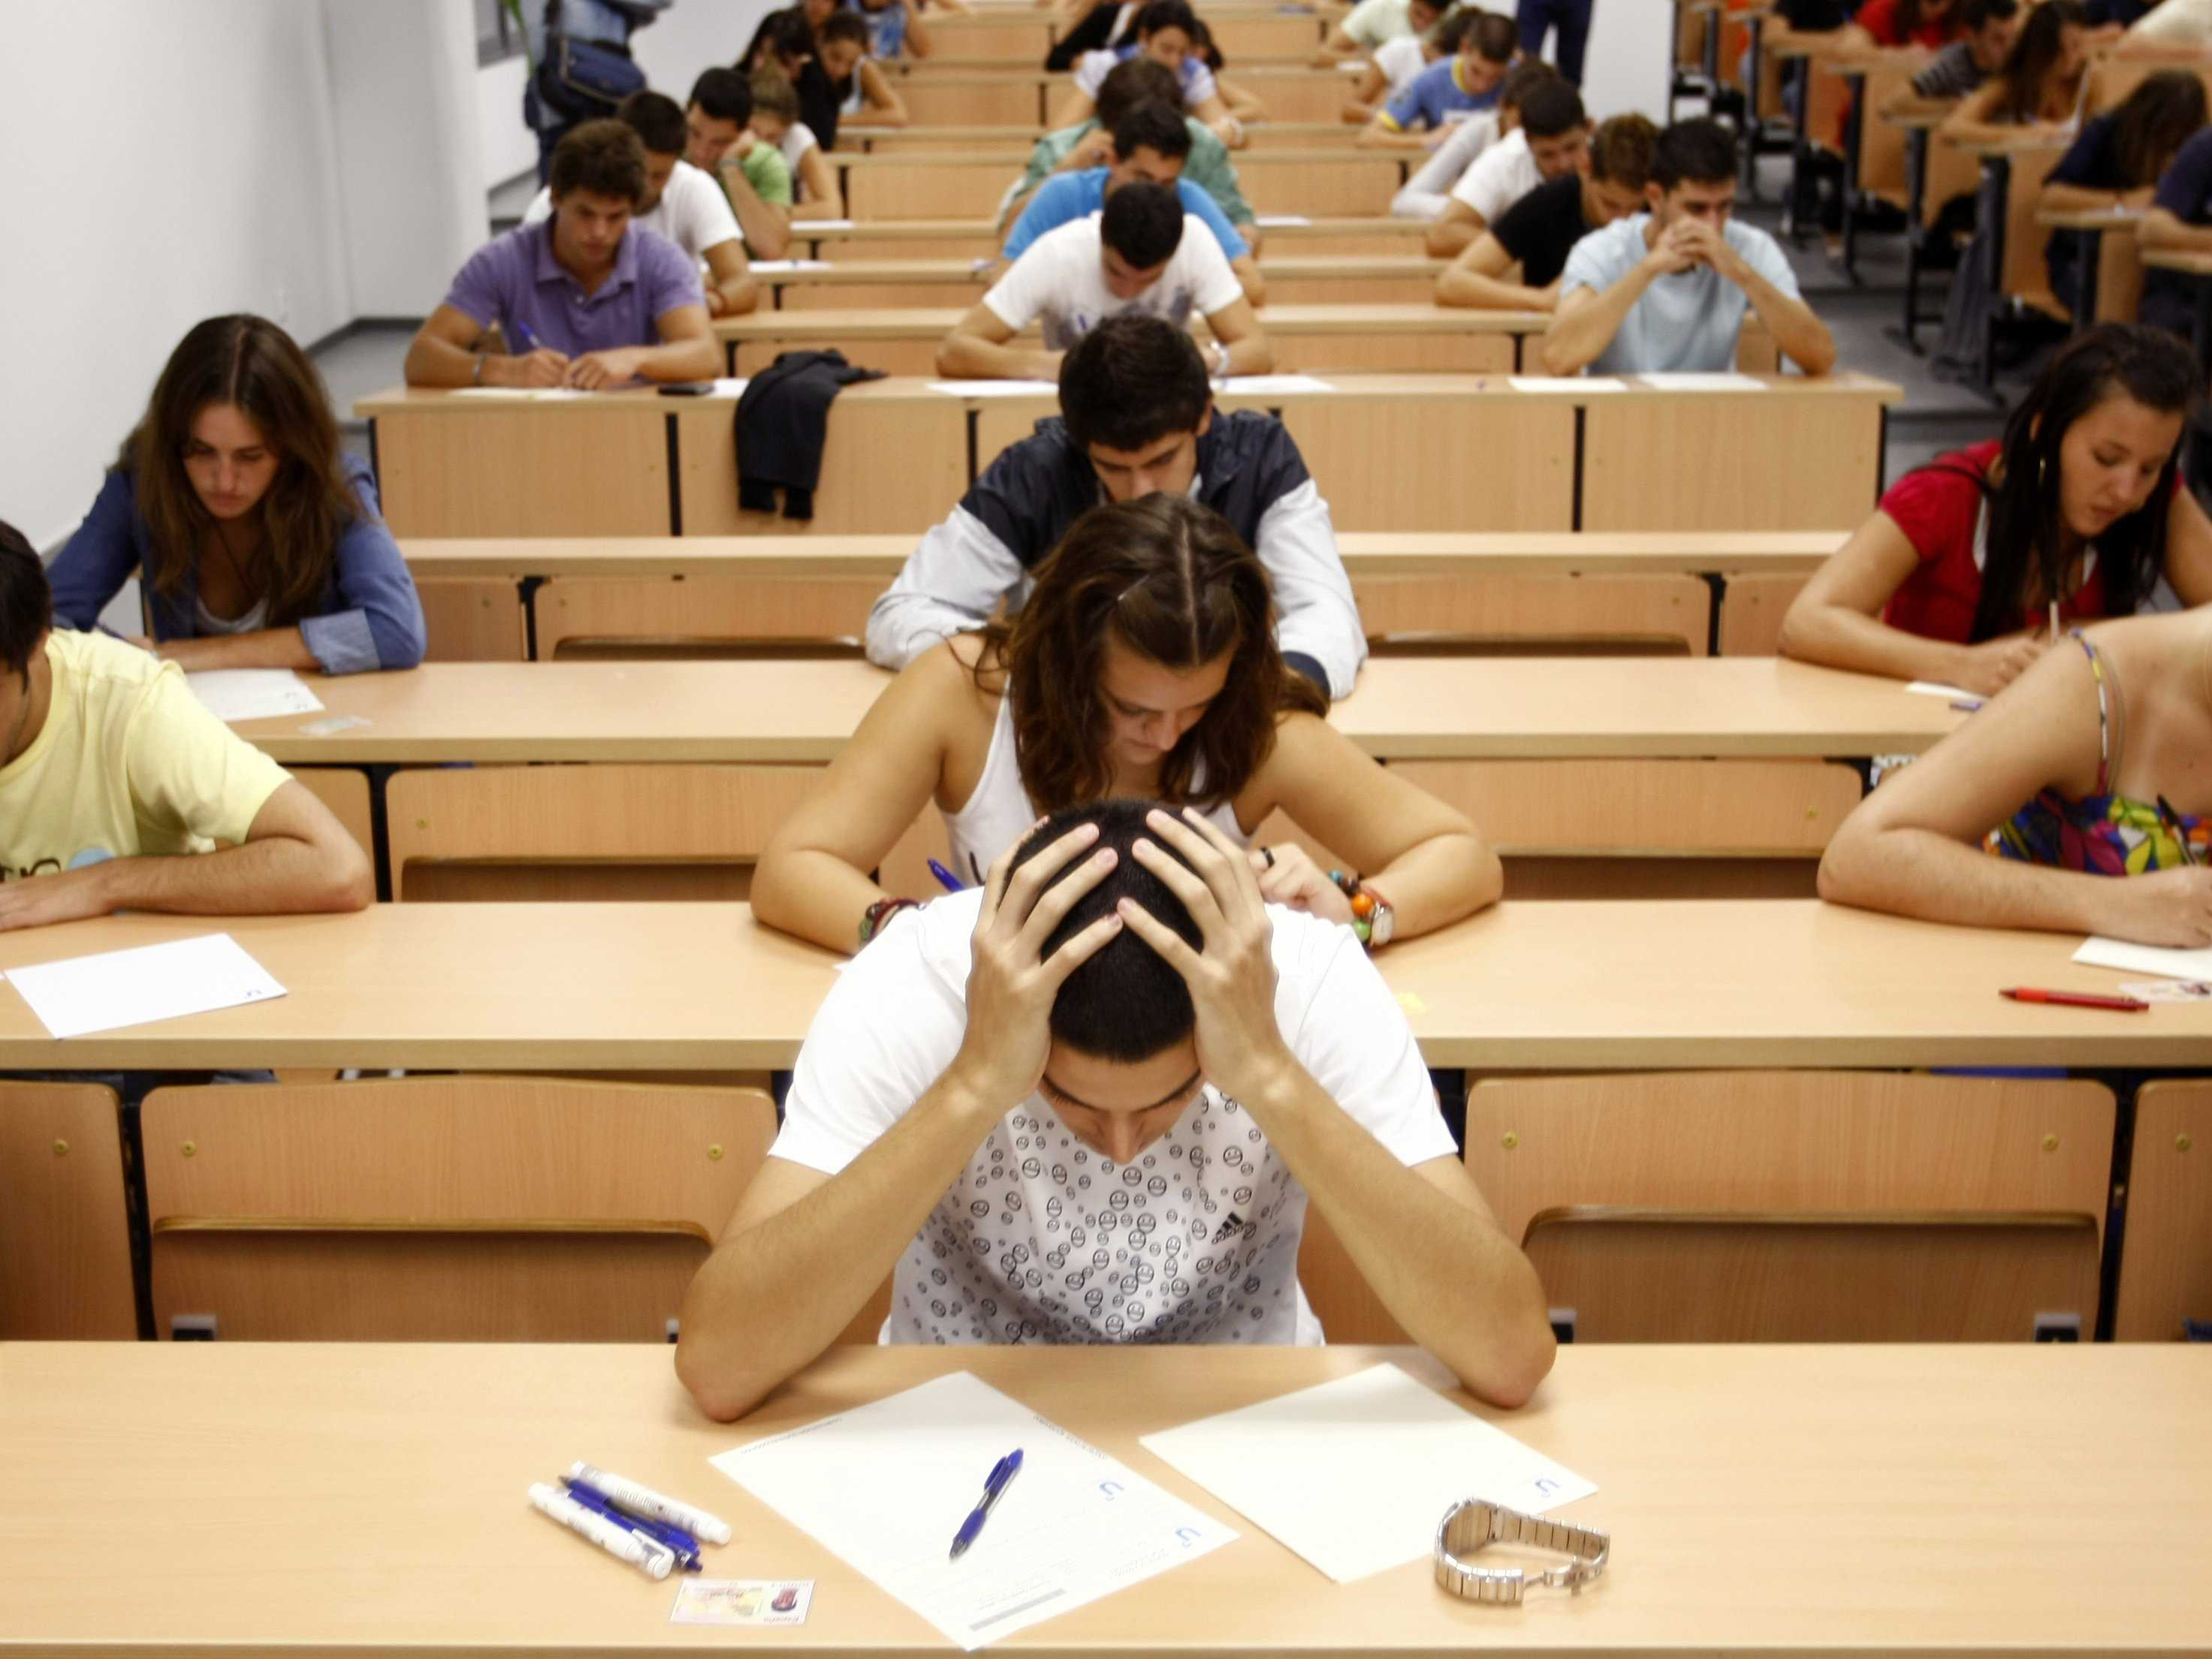 5 Realistic Tips to Get You Through Your End-of-Semester Slump